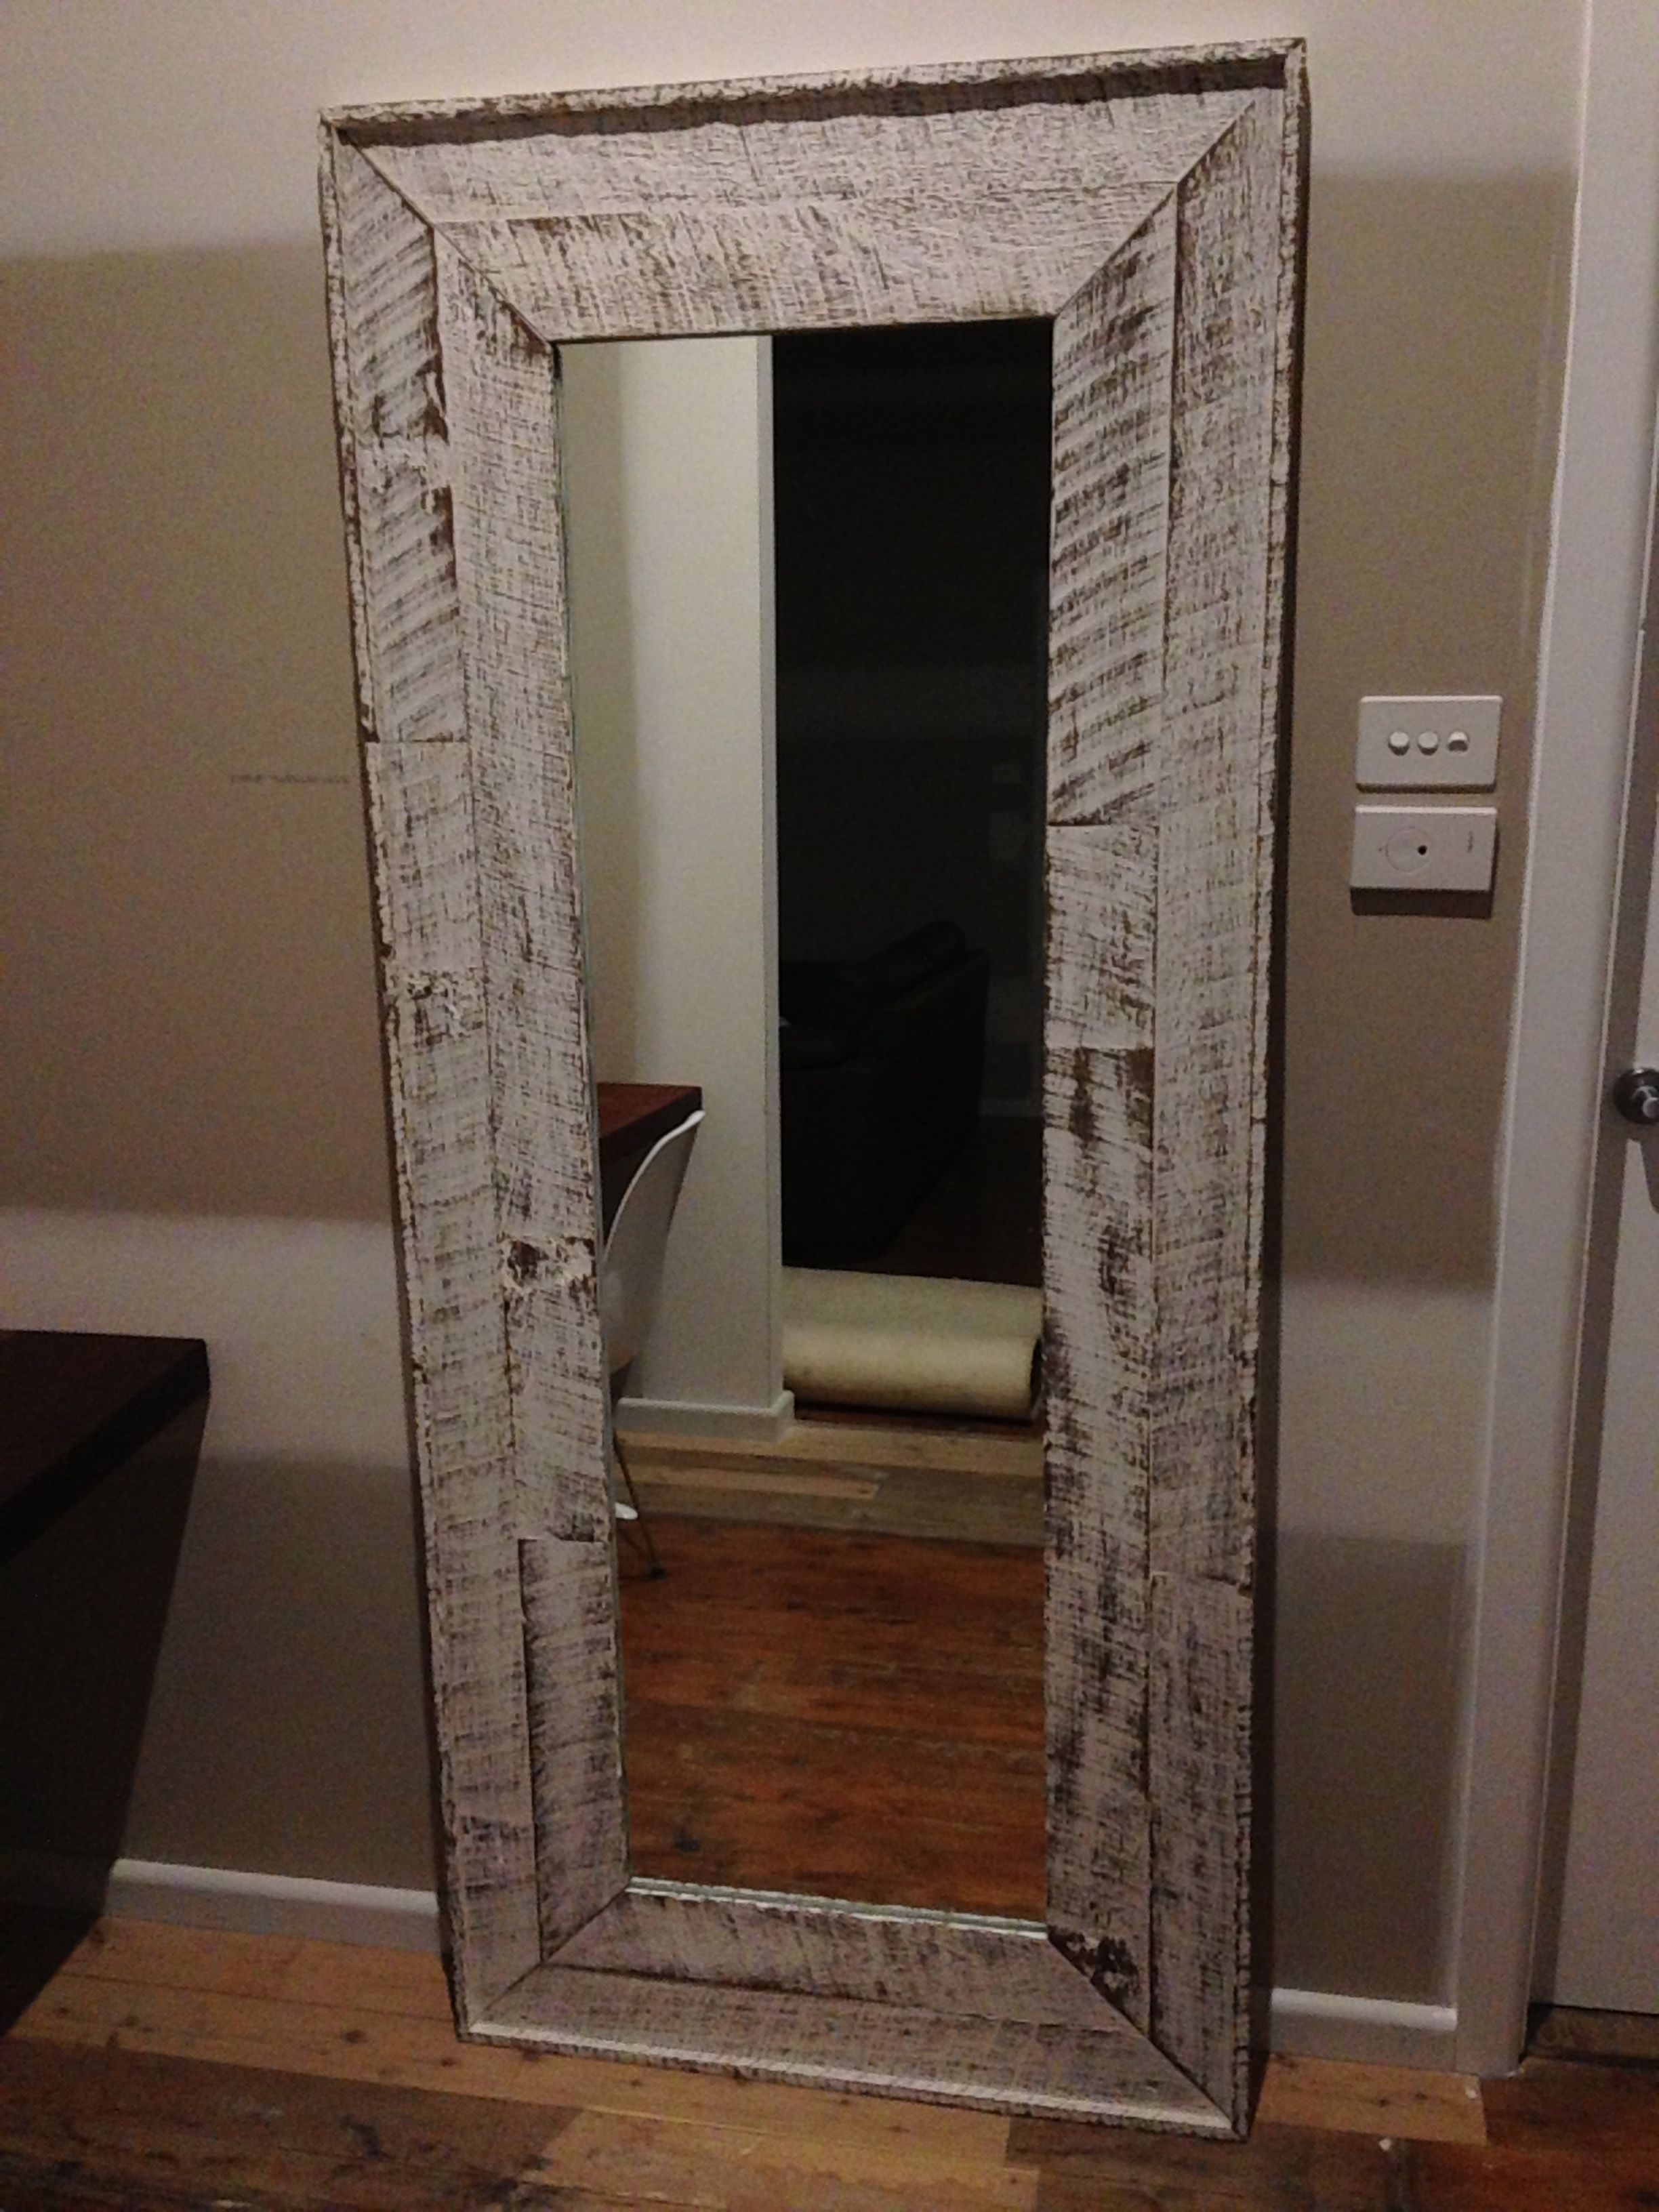 Mirror Frame I Made From Old Fence Palings And Finished With Whitewash Old Fences Barnwood Furniture Upcycle Mirror